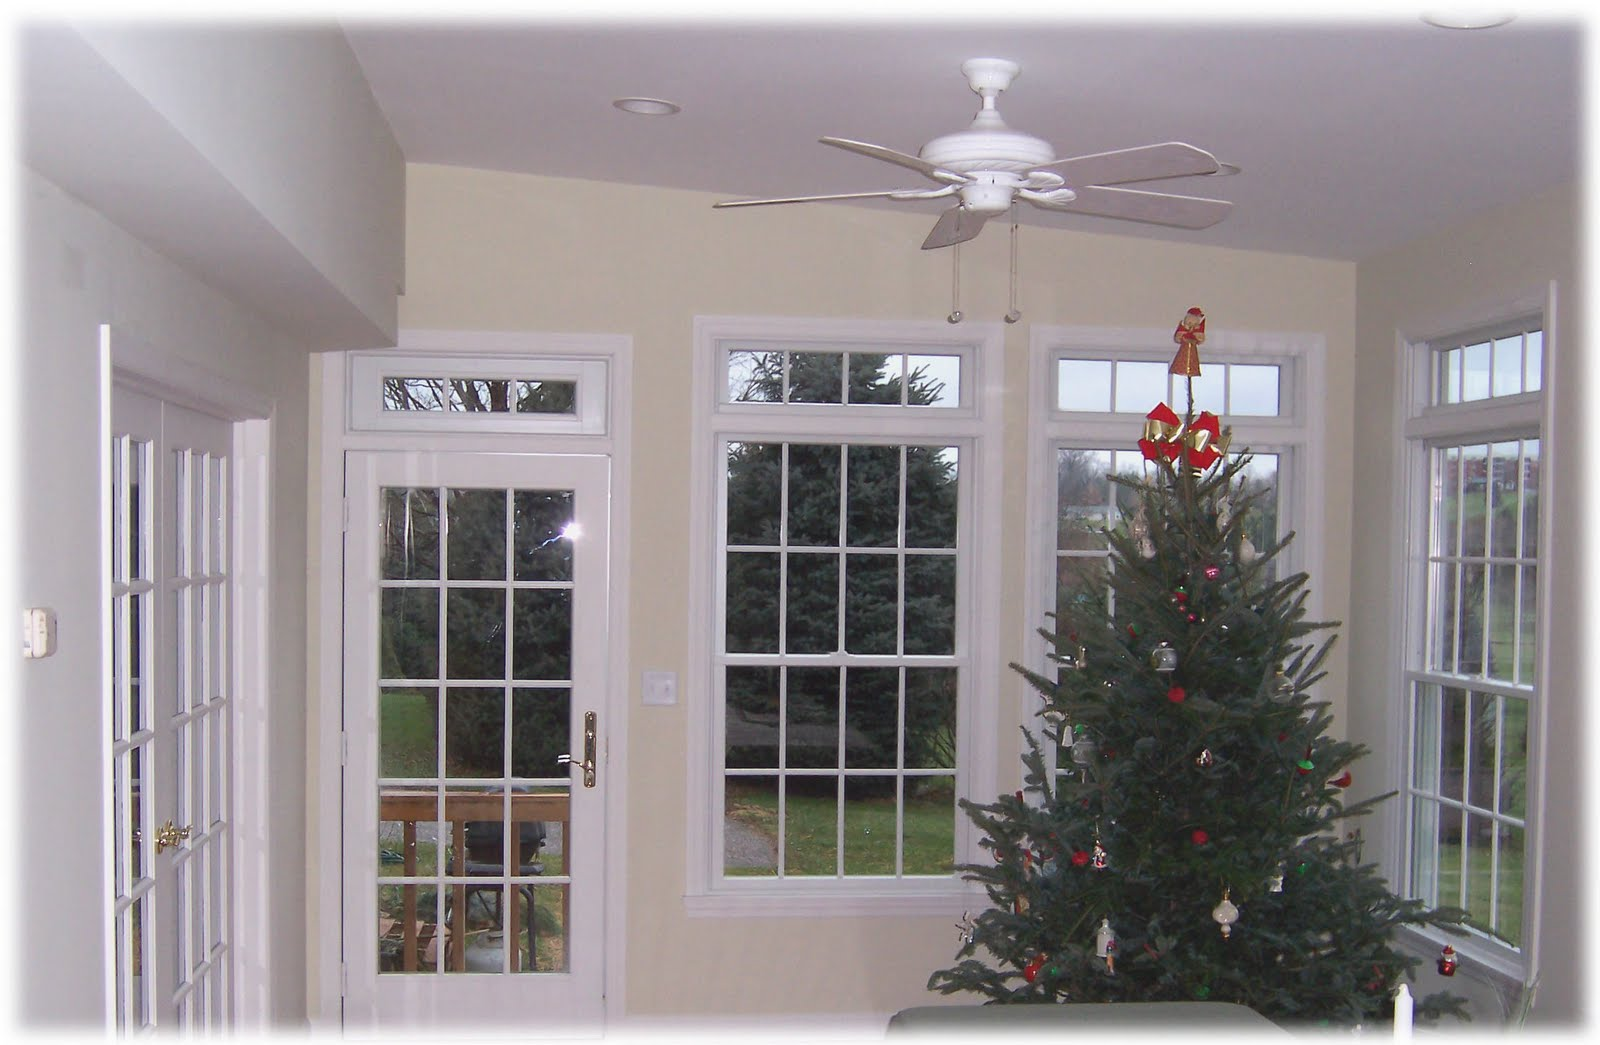 All About Window Window Designs Modern Or Old Fashioned